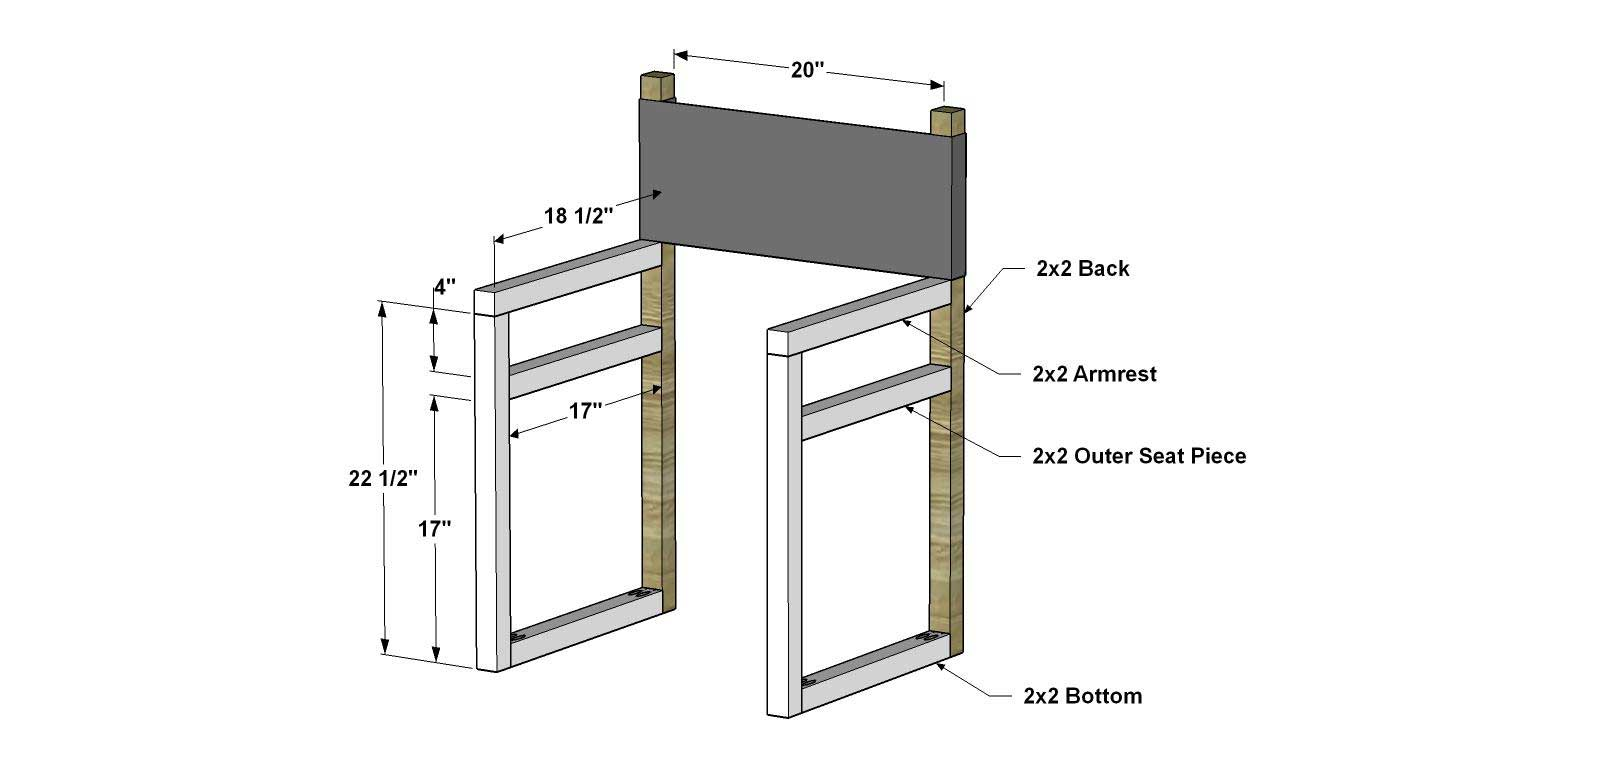 Back of director chairs - Cut The Pieces For The Fronts Arm Rests Outer Seat Pieces And Bottoms With The Kreg Jig Set For 1 1 2 Material Drill Pocket Holes In The Top Ends Of